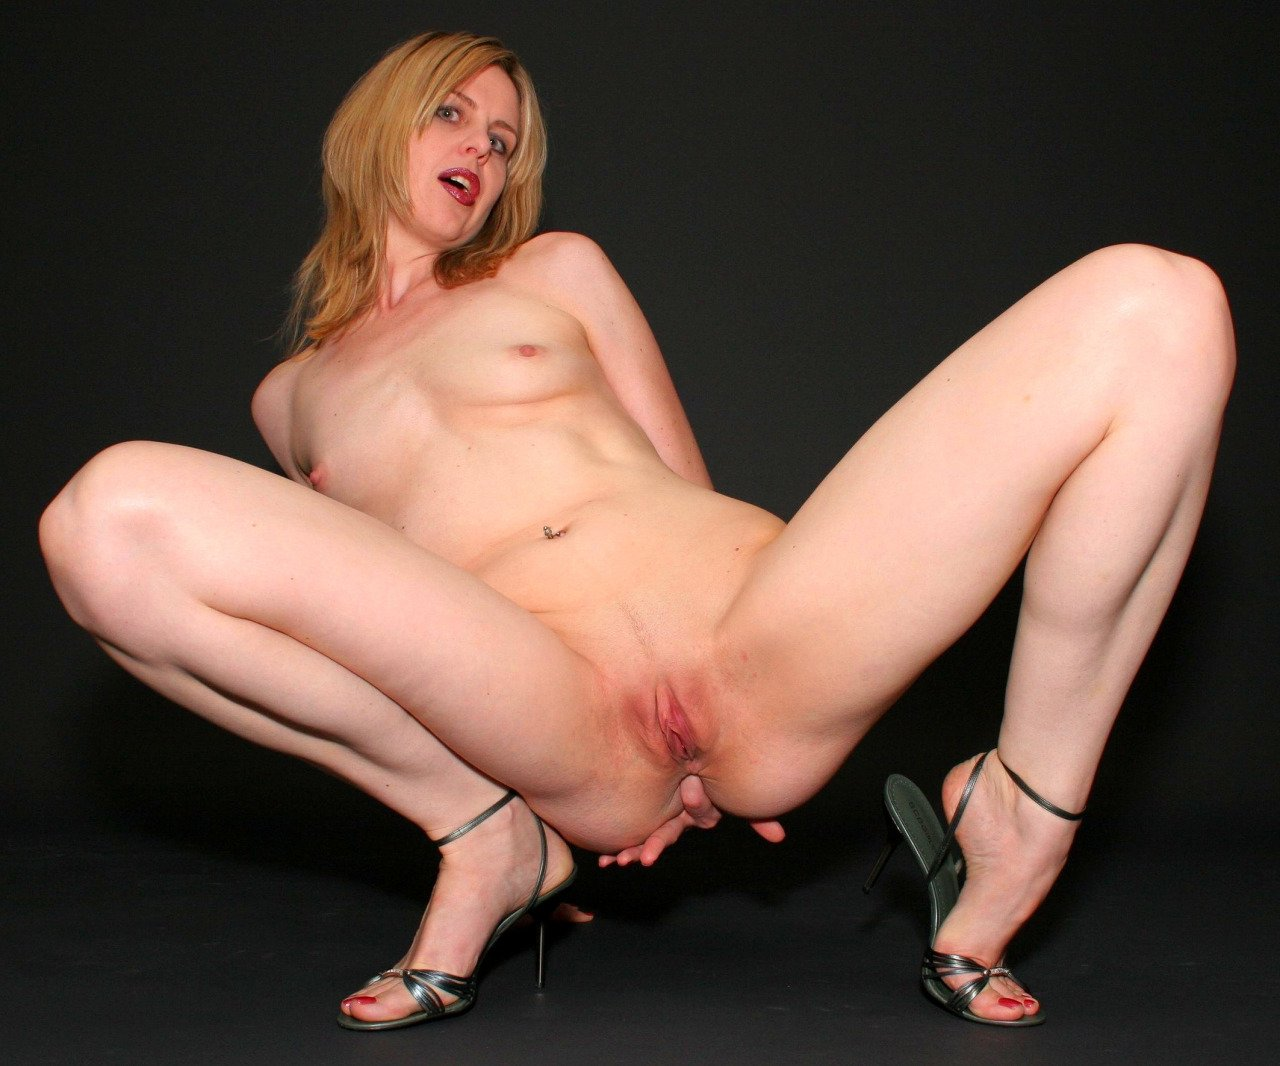 4 bbc and double anal penetration for hungarian hottie full free milf videos